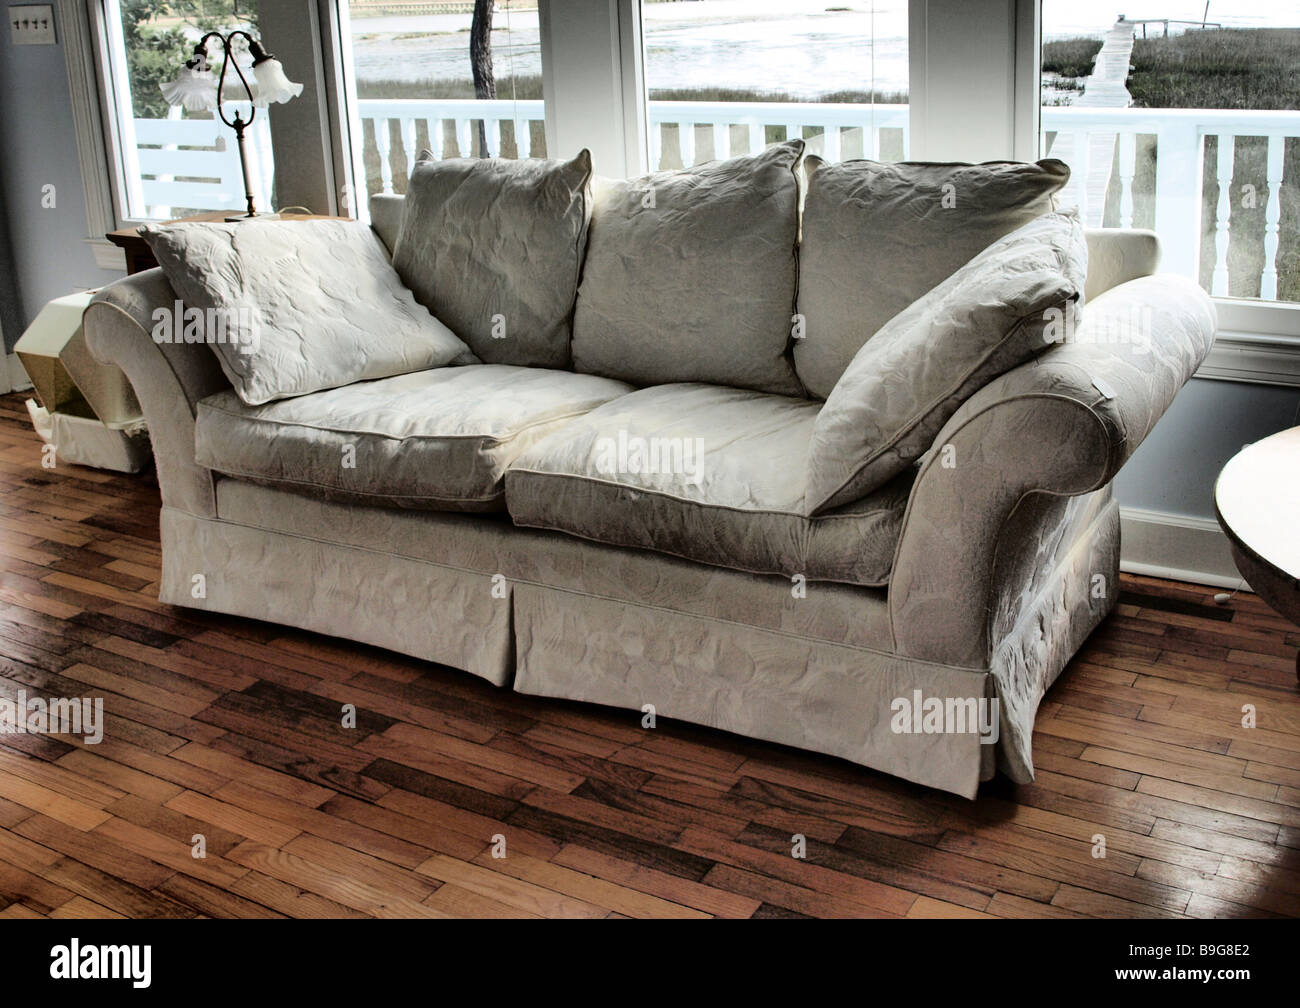 sofa couch on wooden floor with window in back looking to fence gray - Stock Image